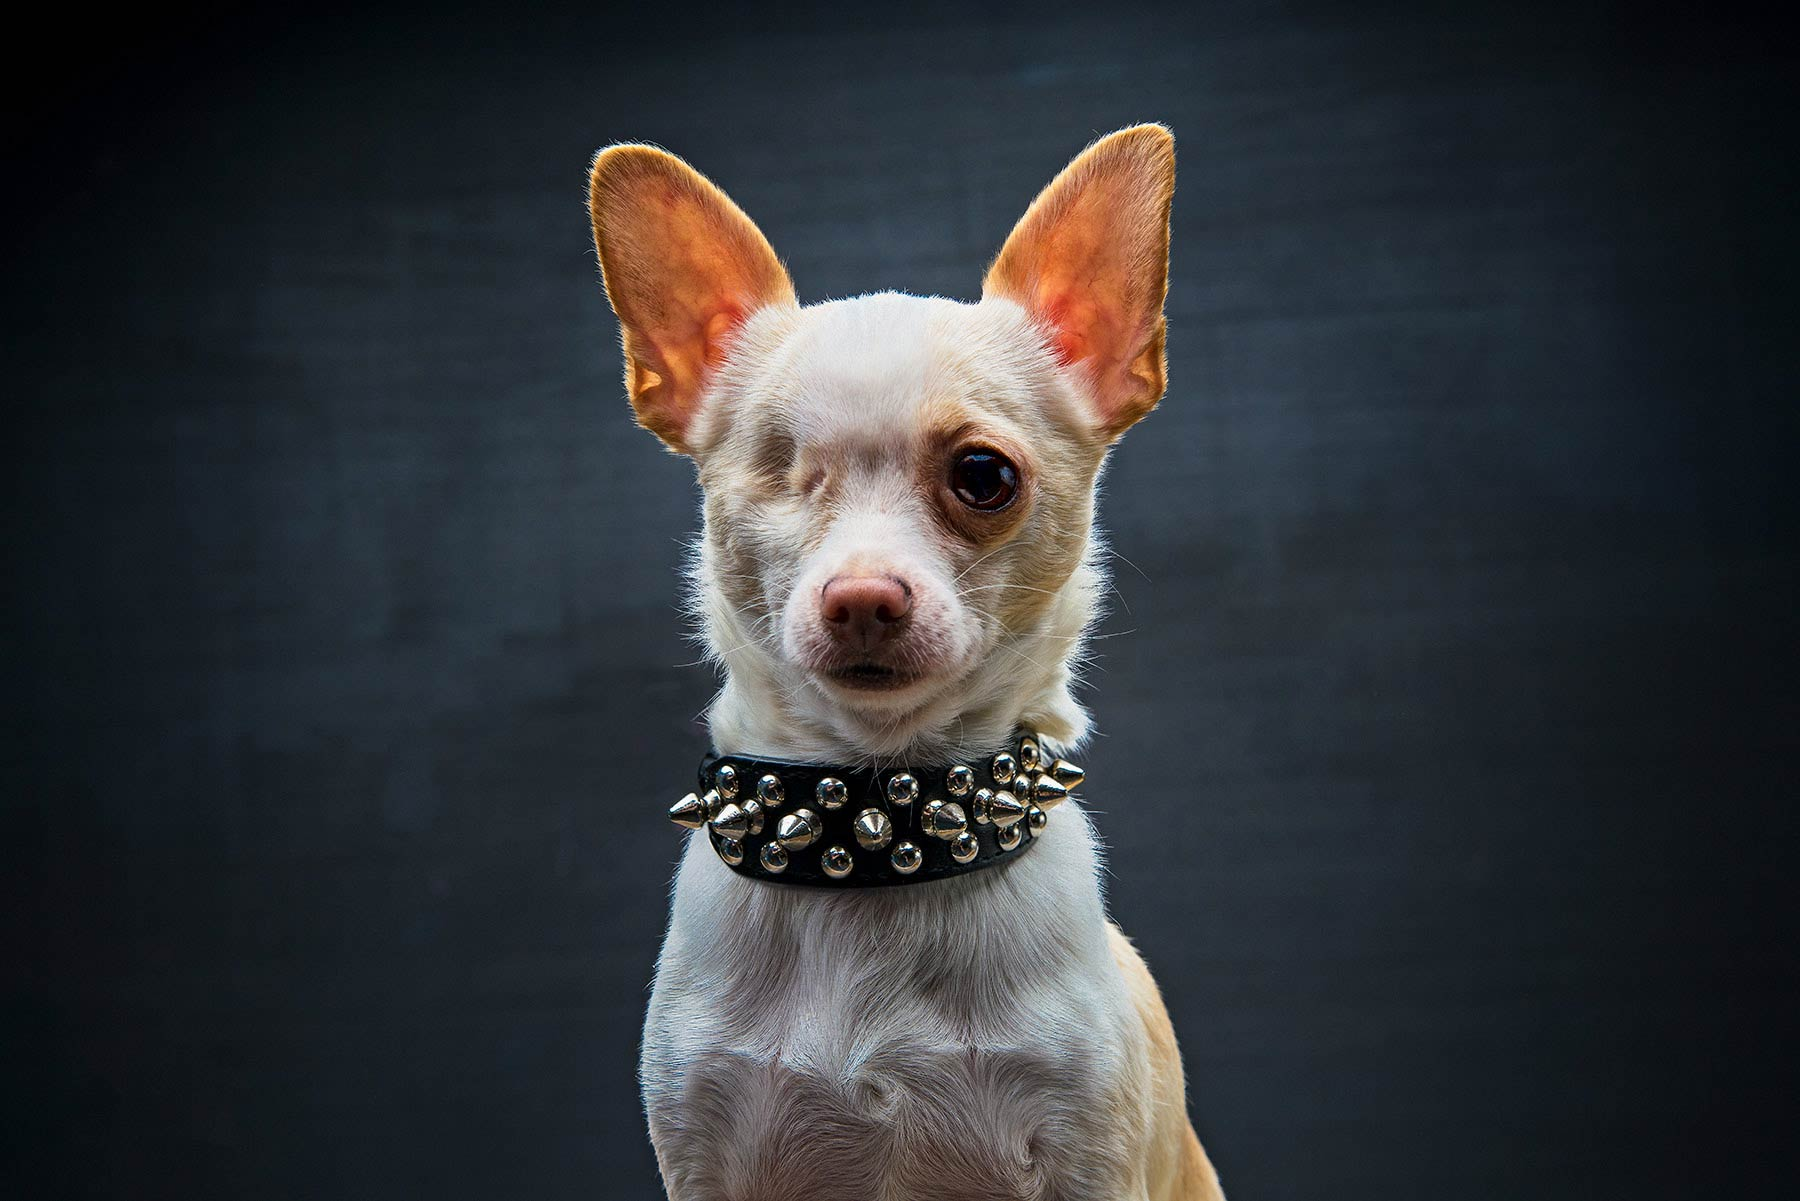 A-studio-portrait-of-a-one-eyed-chihuahua-dog-against-a-black-background